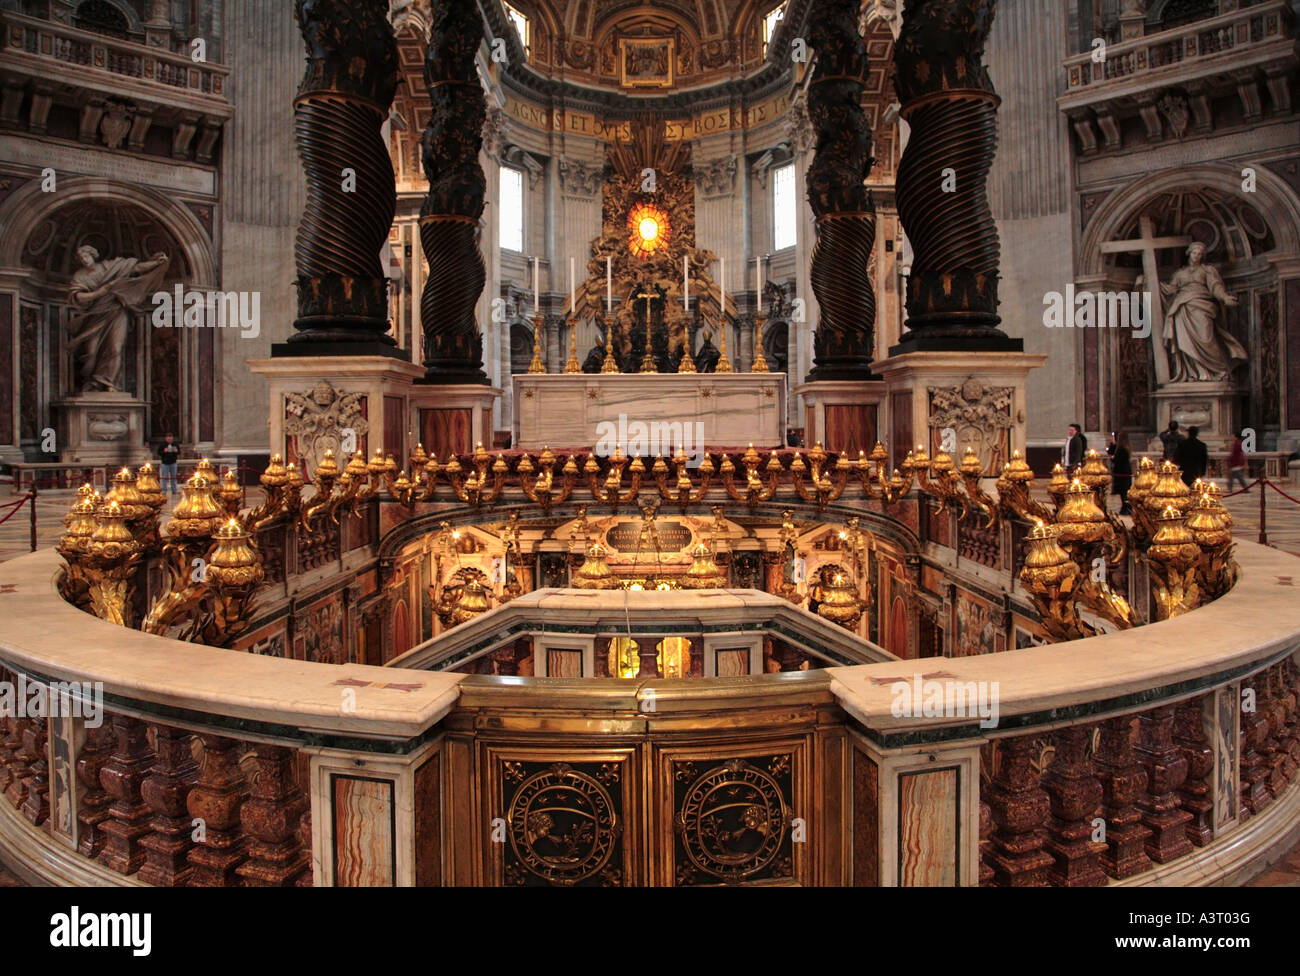 The tomb of St Peter the Apostle in Saint Peter's Basilica Vatican City Rome Italy - Stock Image